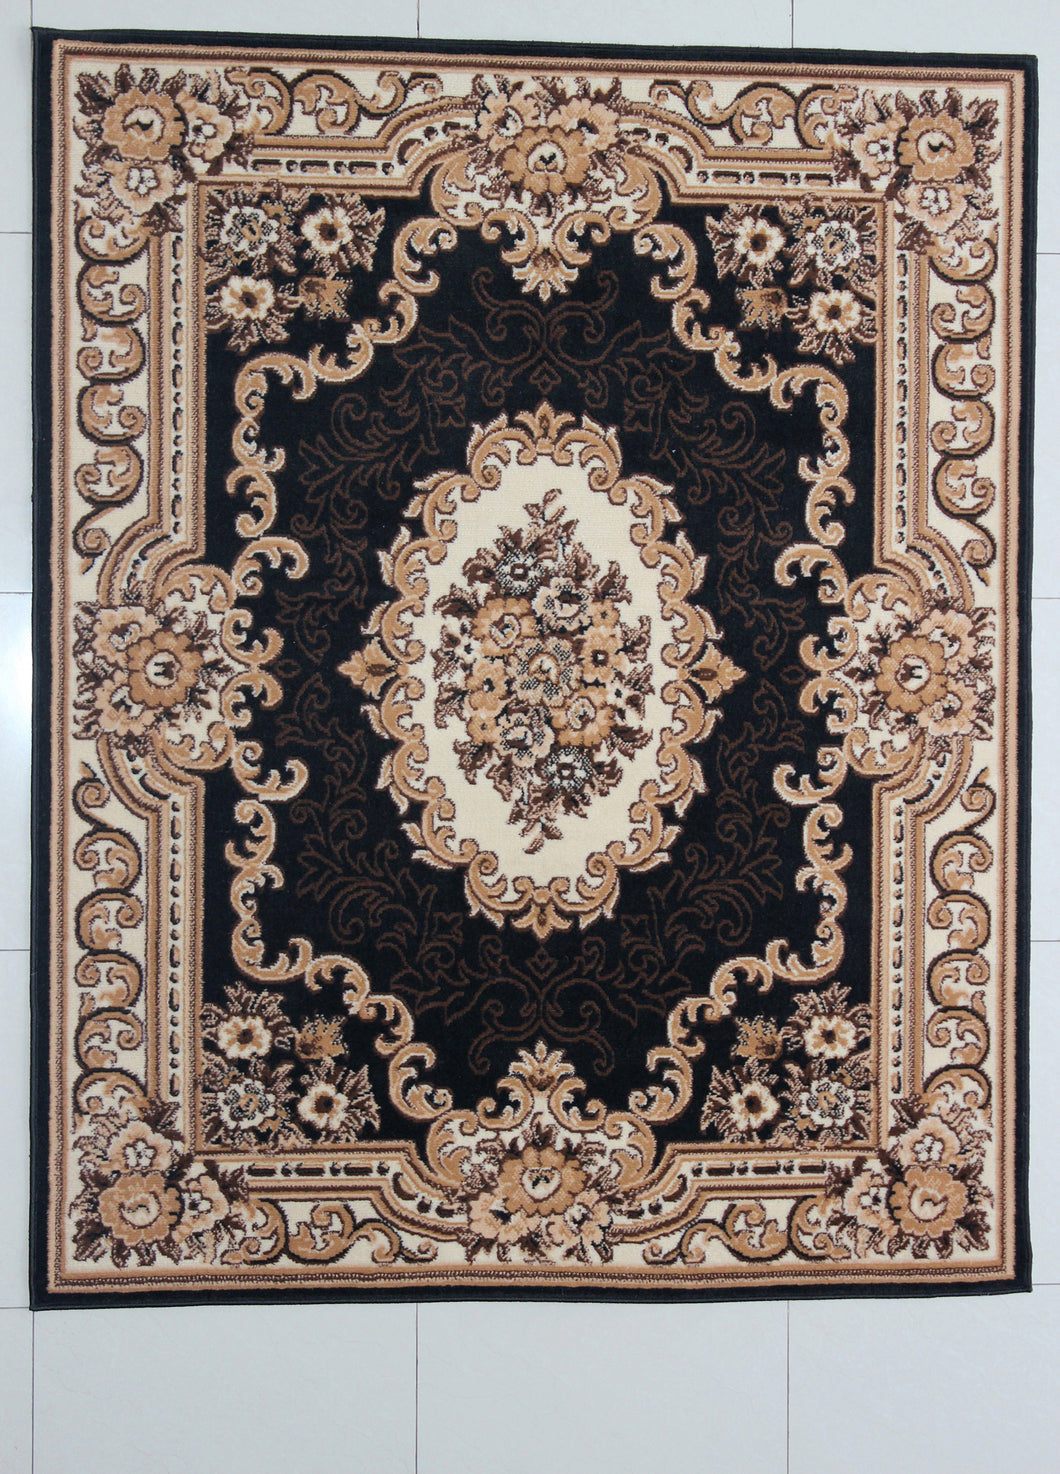 Achilles Black Area Rug - Rug Tycoon